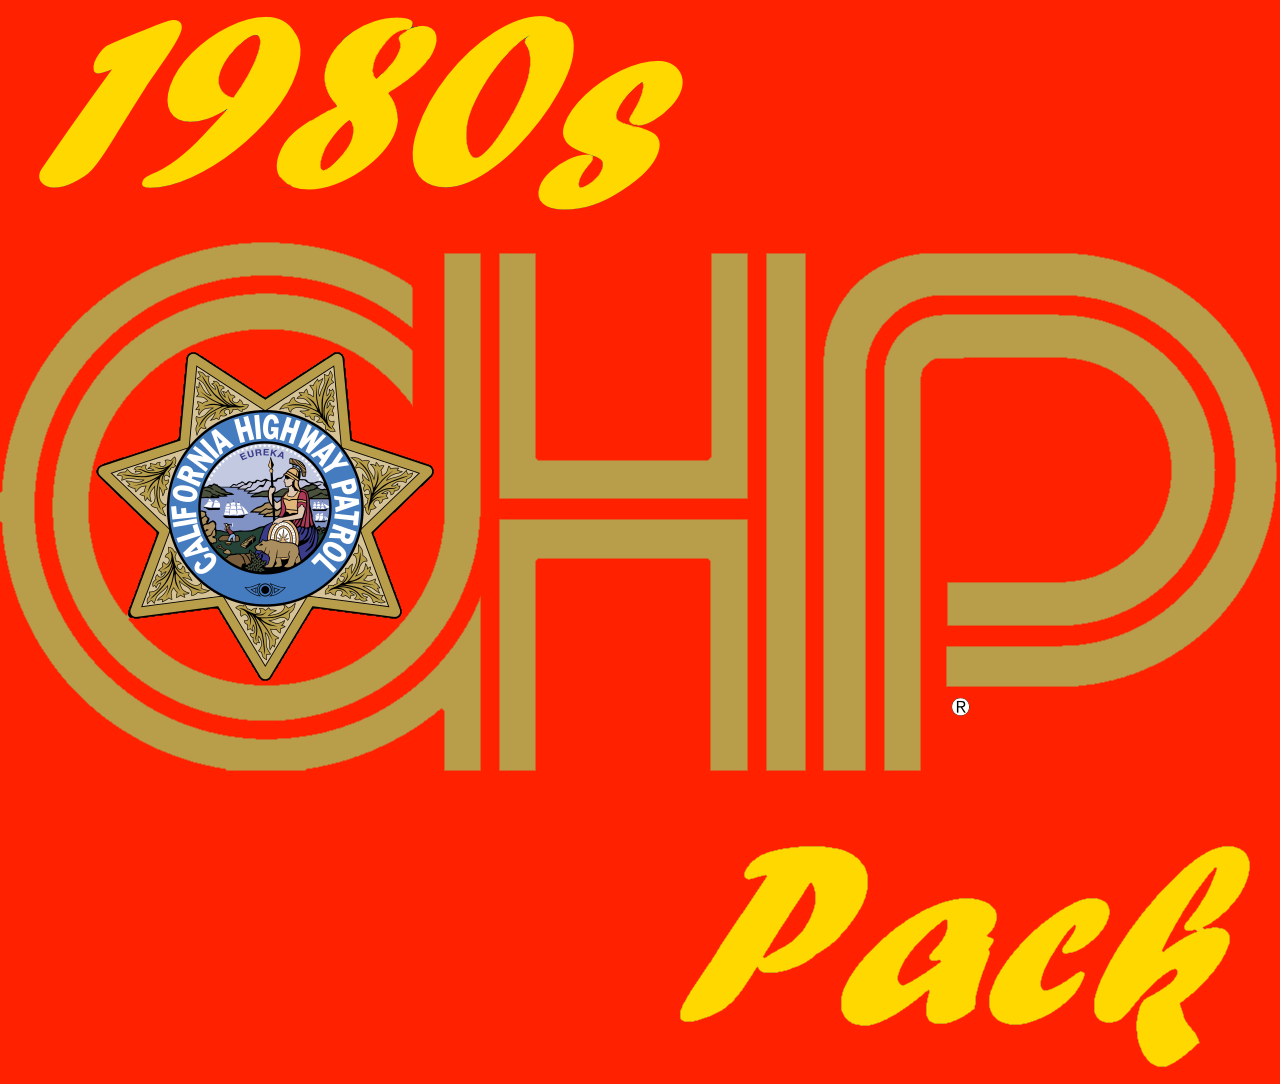 1980s california highway patrol pack gta5. Black Bedroom Furniture Sets. Home Design Ideas